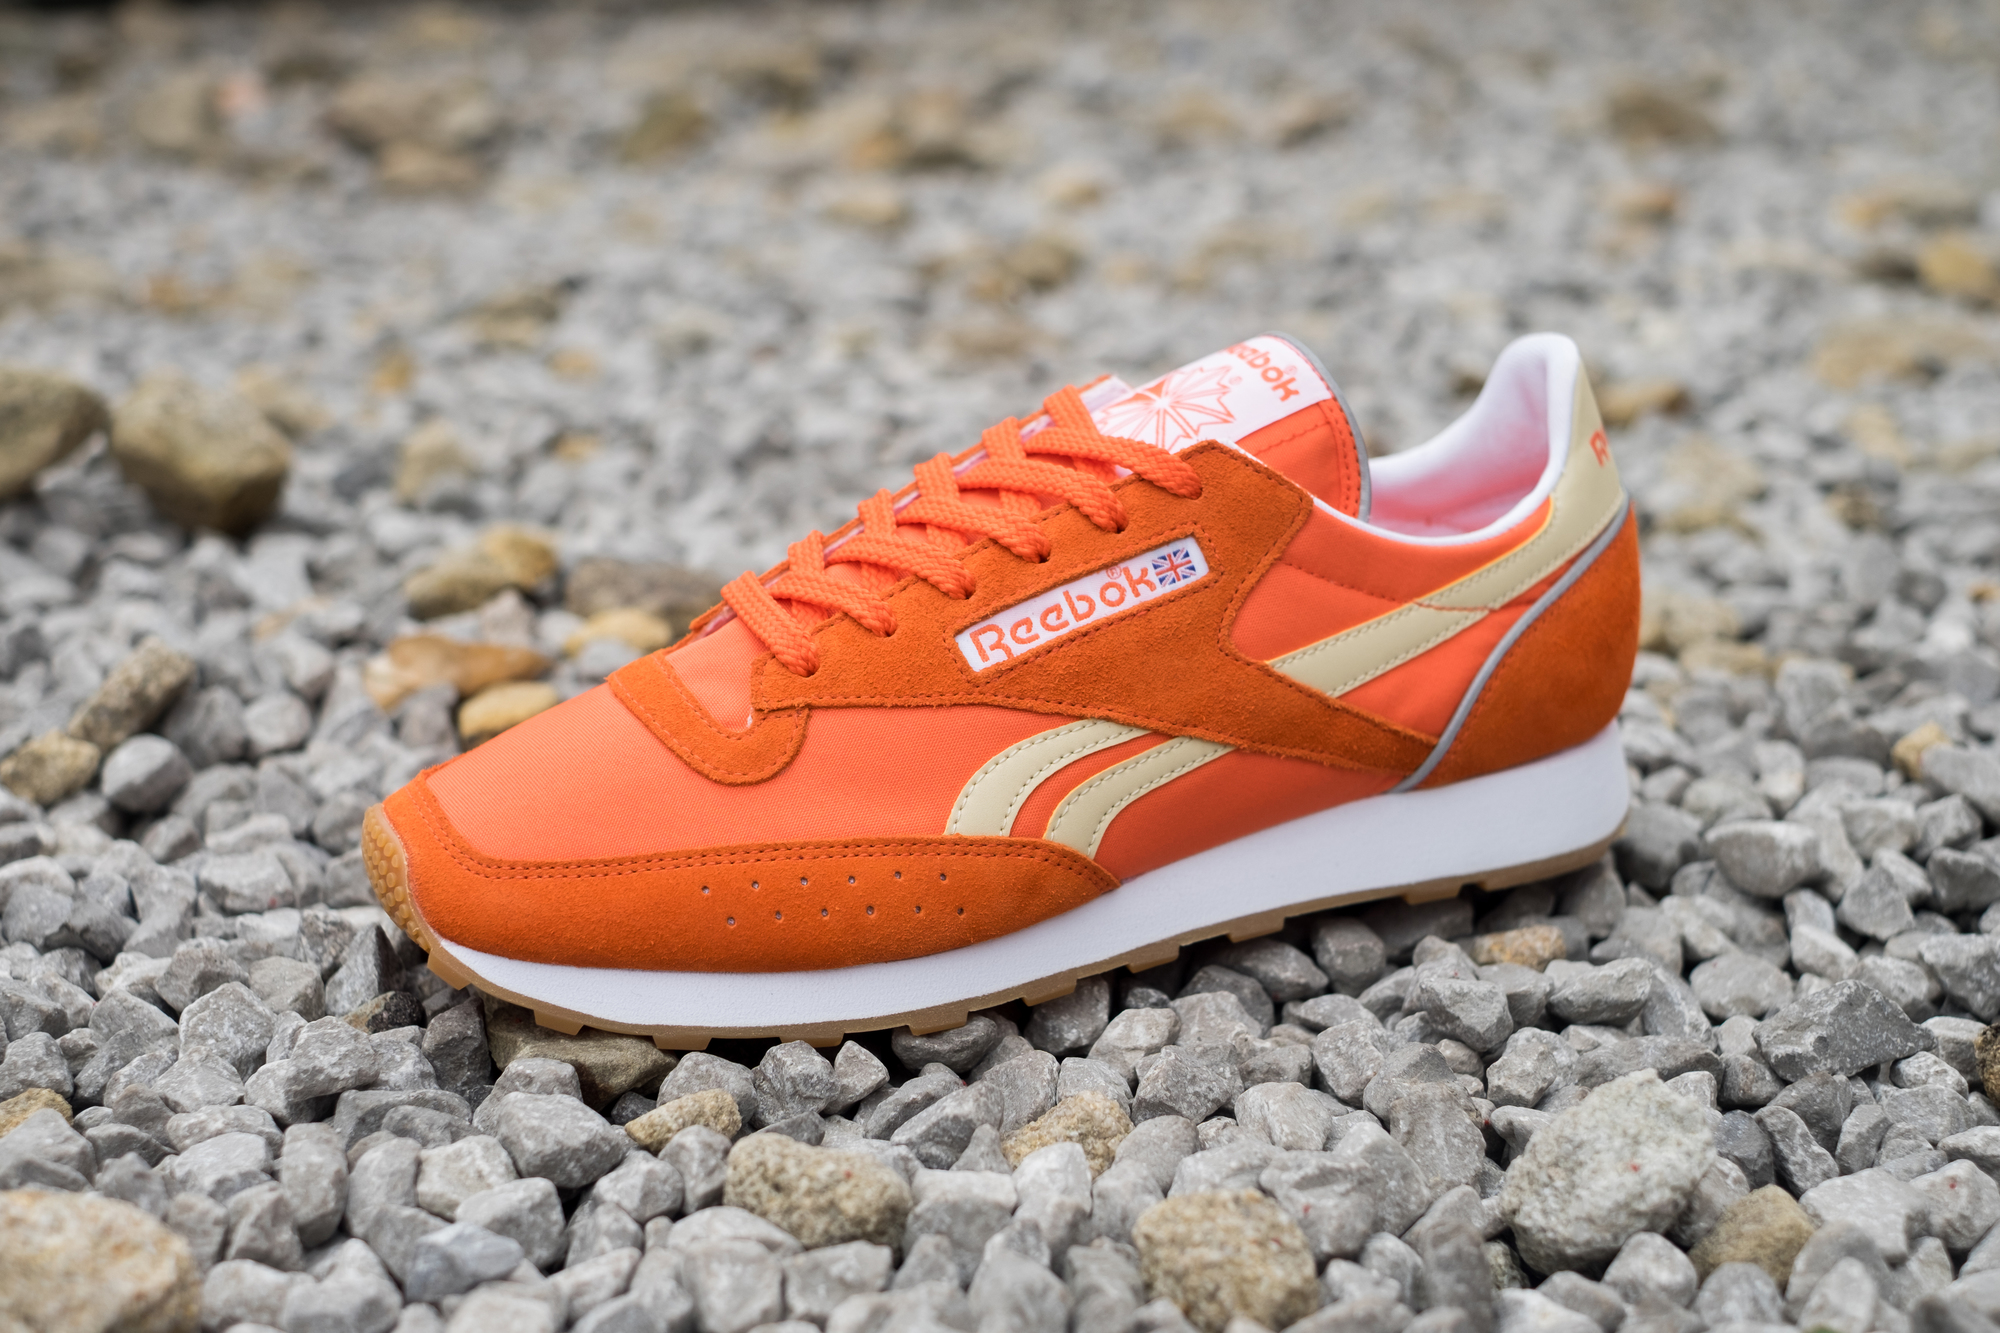 The Reebok Classic 83 Ree-Cut is a size